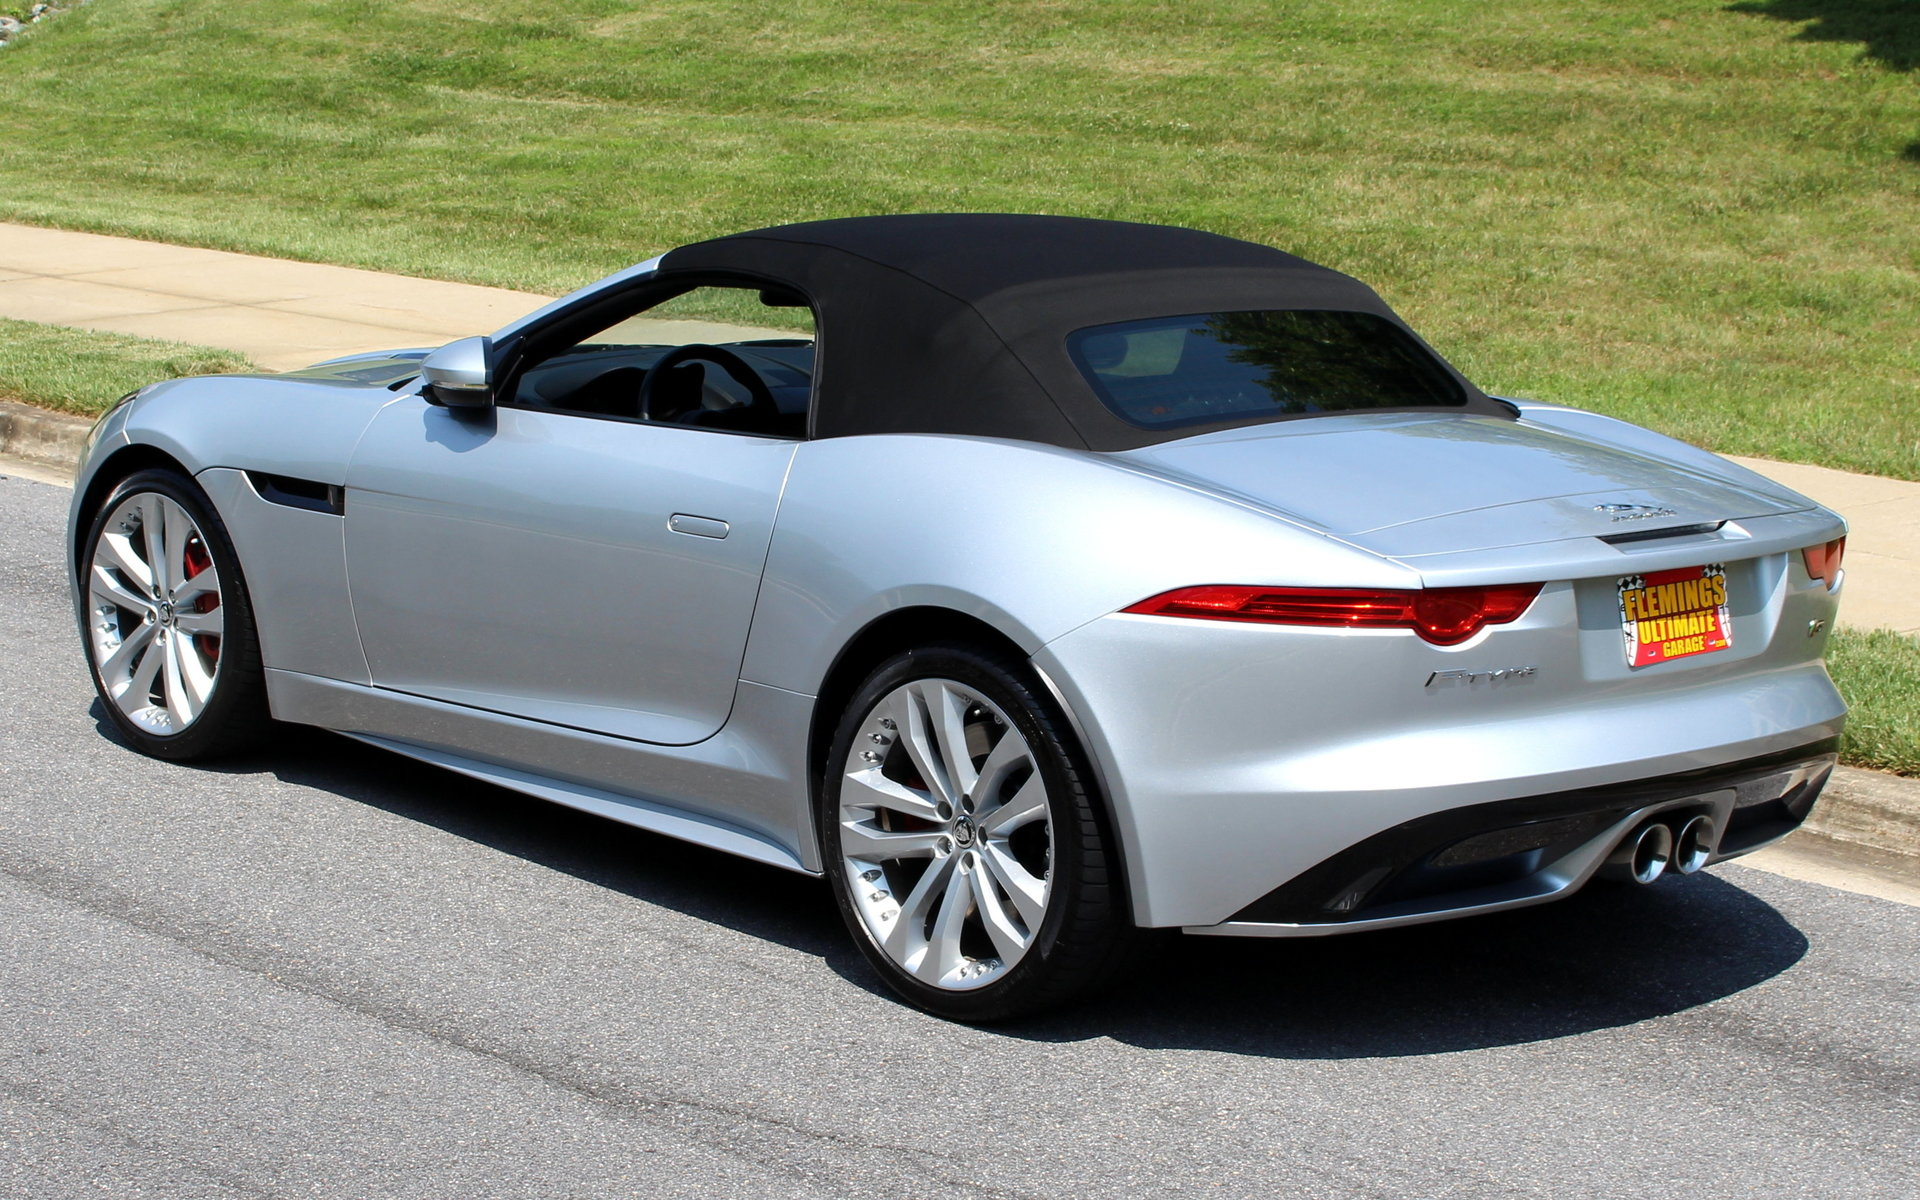 2014 jaguar f type s convertible for sale 93080 mcg. Black Bedroom Furniture Sets. Home Design Ideas